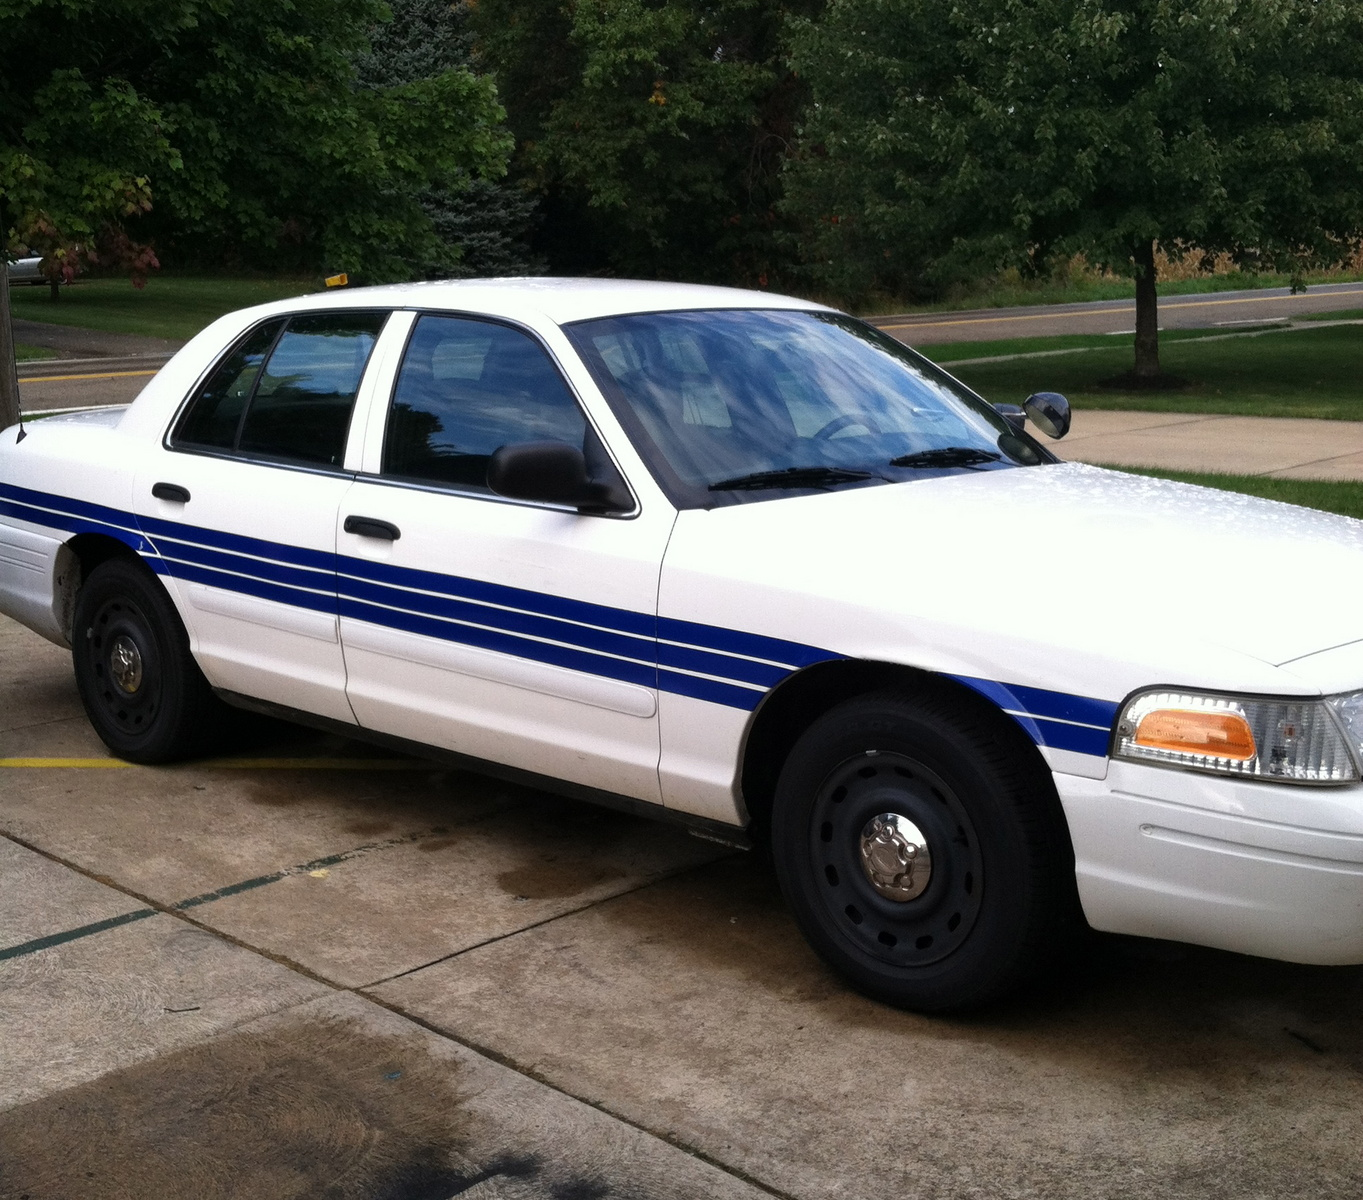 2008 Ford Crown Victoria Exterior: 2005 Ford Crown Victoria